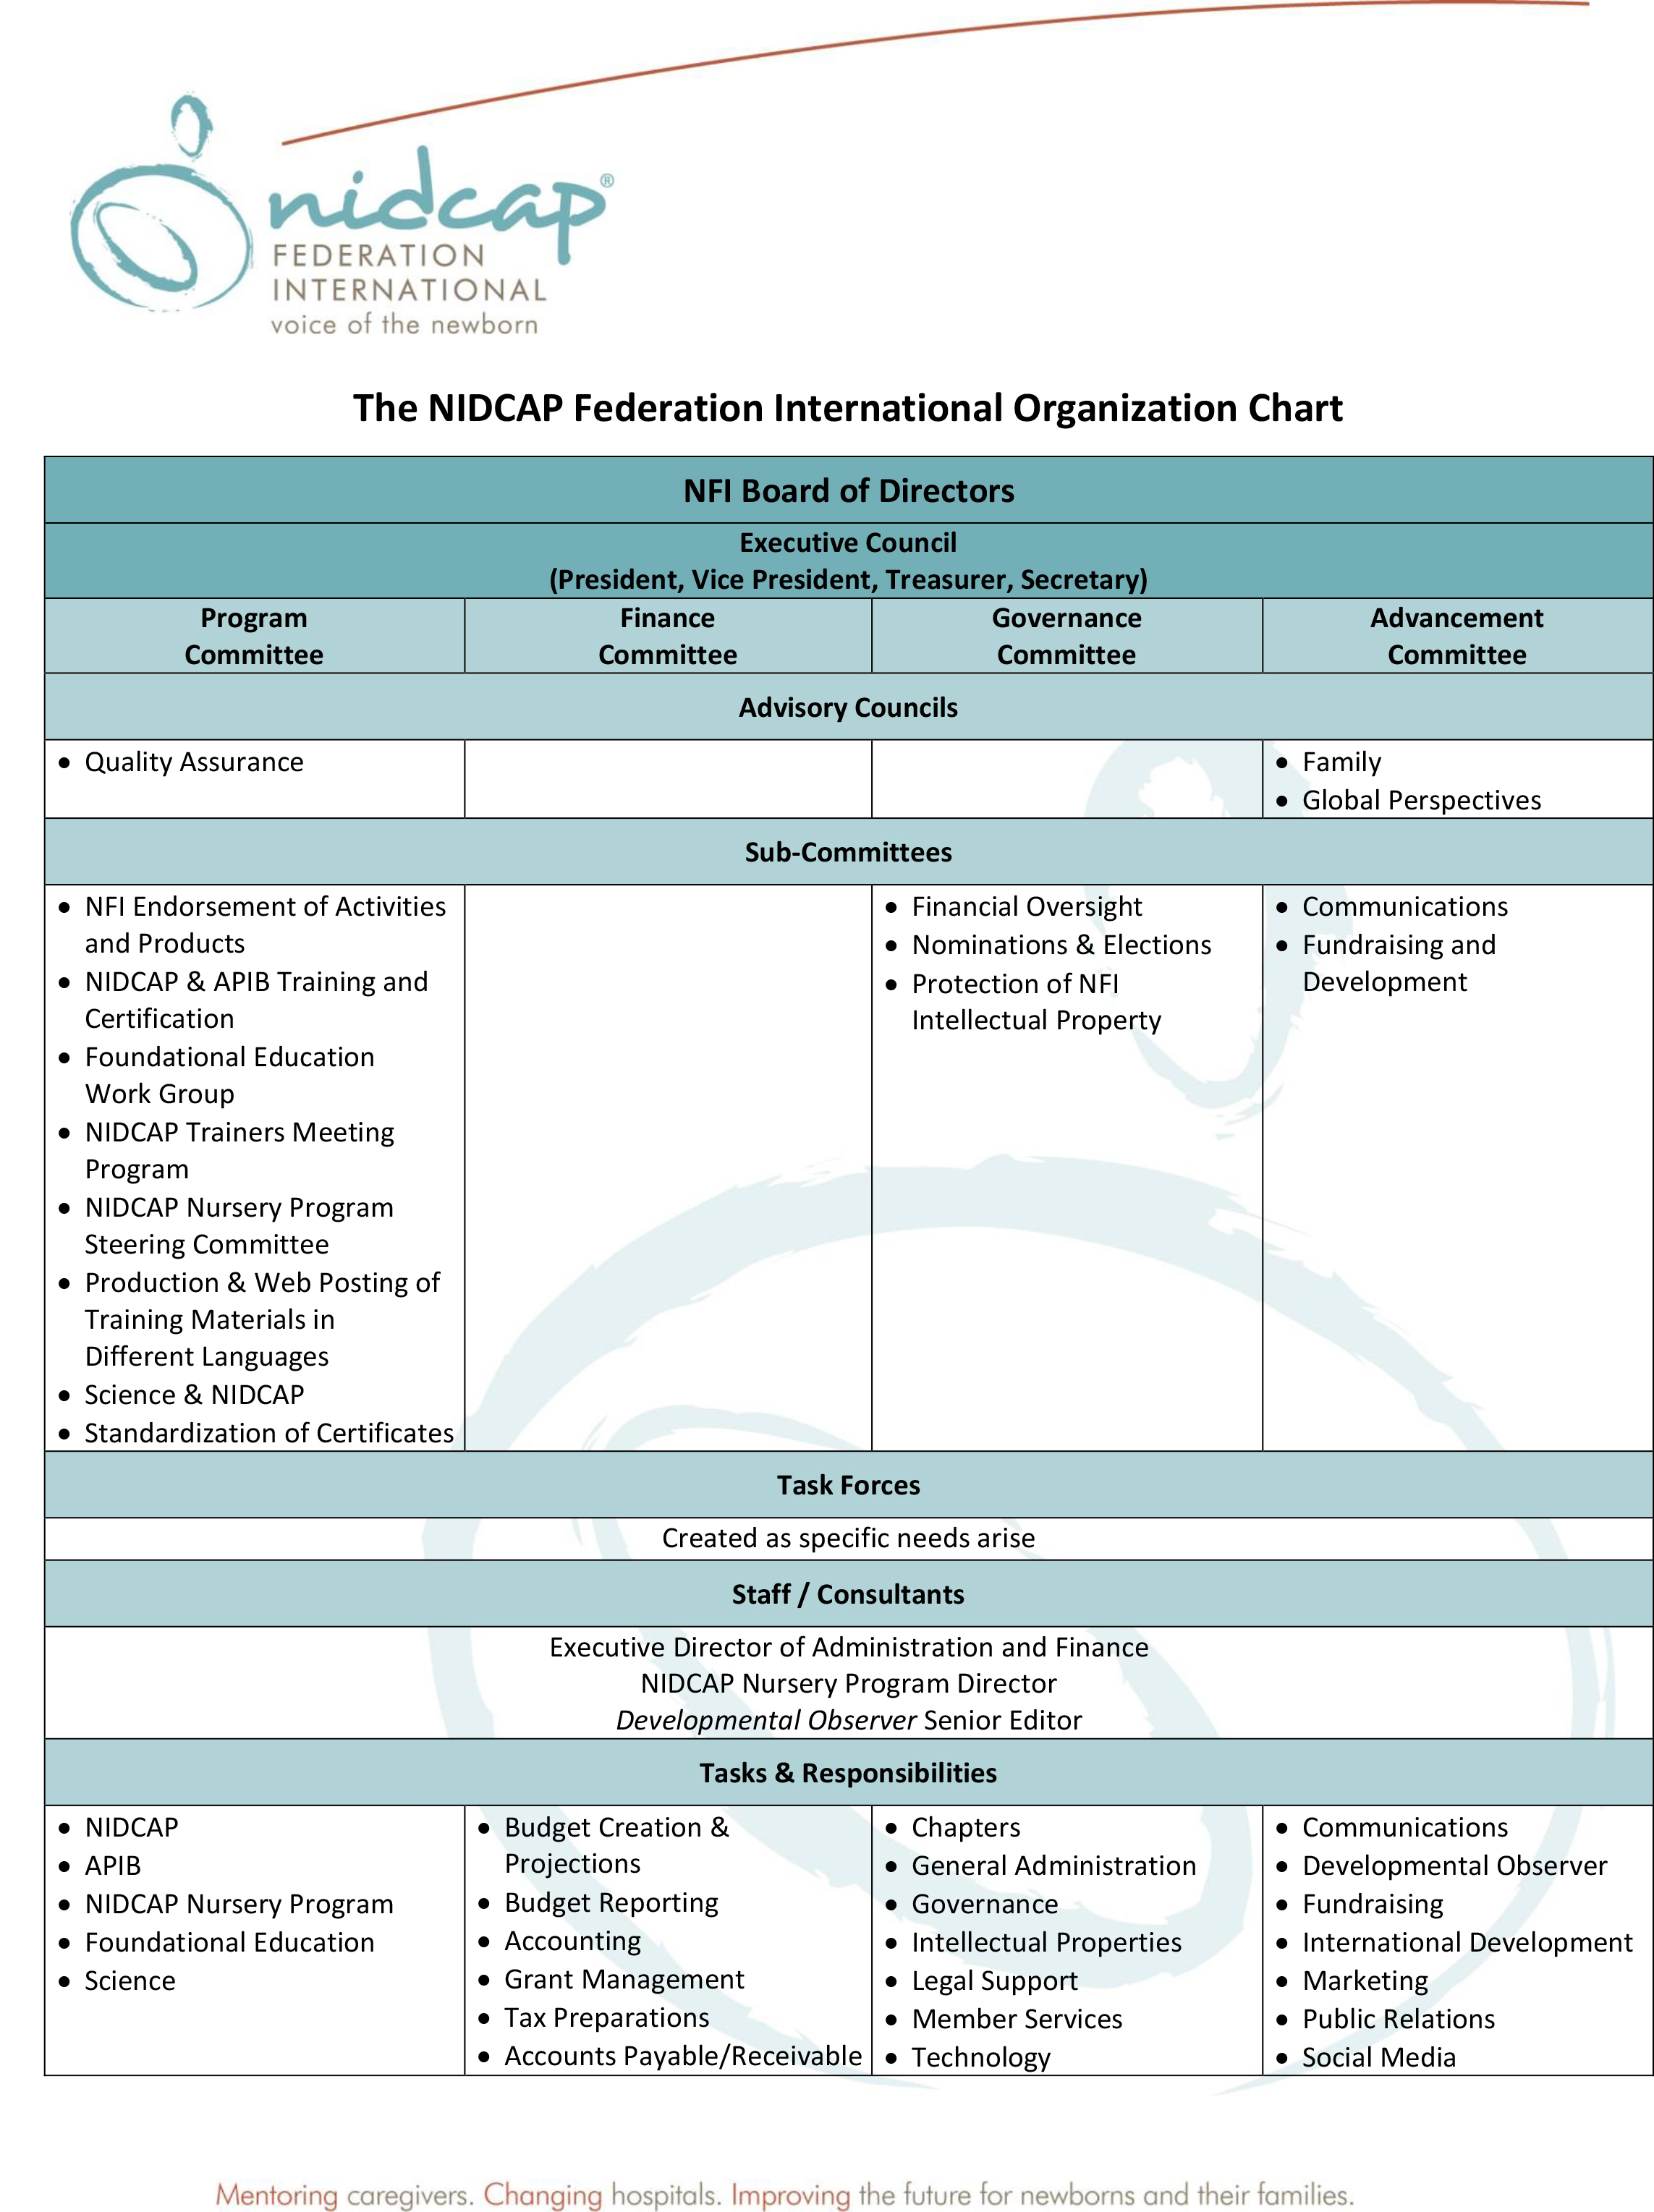 The NFI Organization Chart Revised August 20 2018